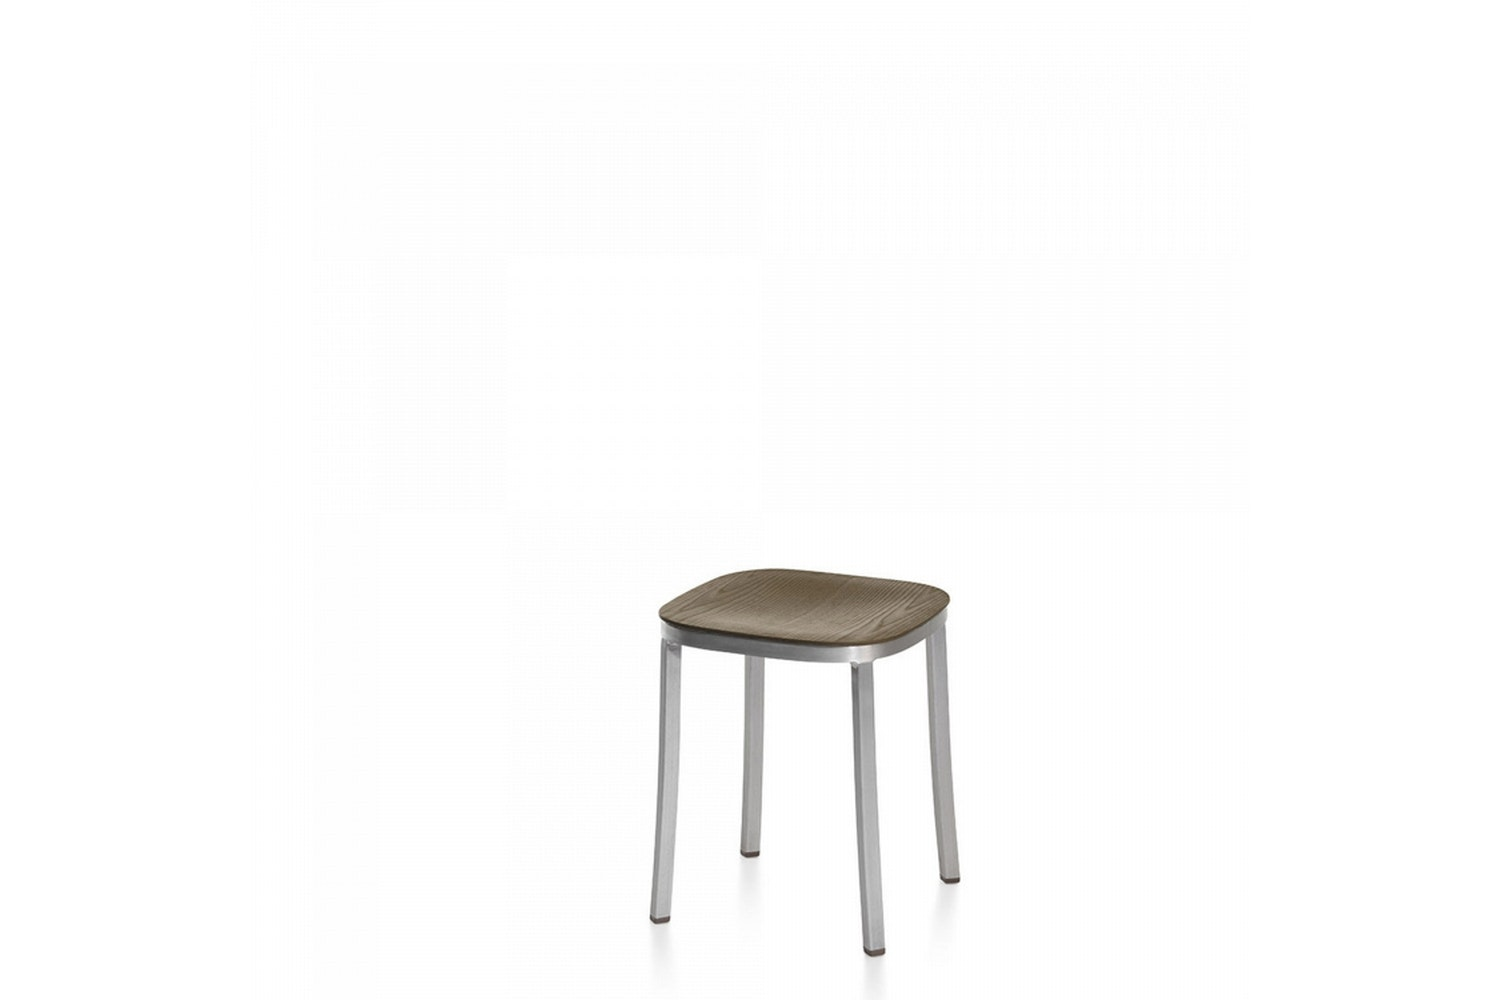 1 Inch Stool by Jasper Morrison for Emeco